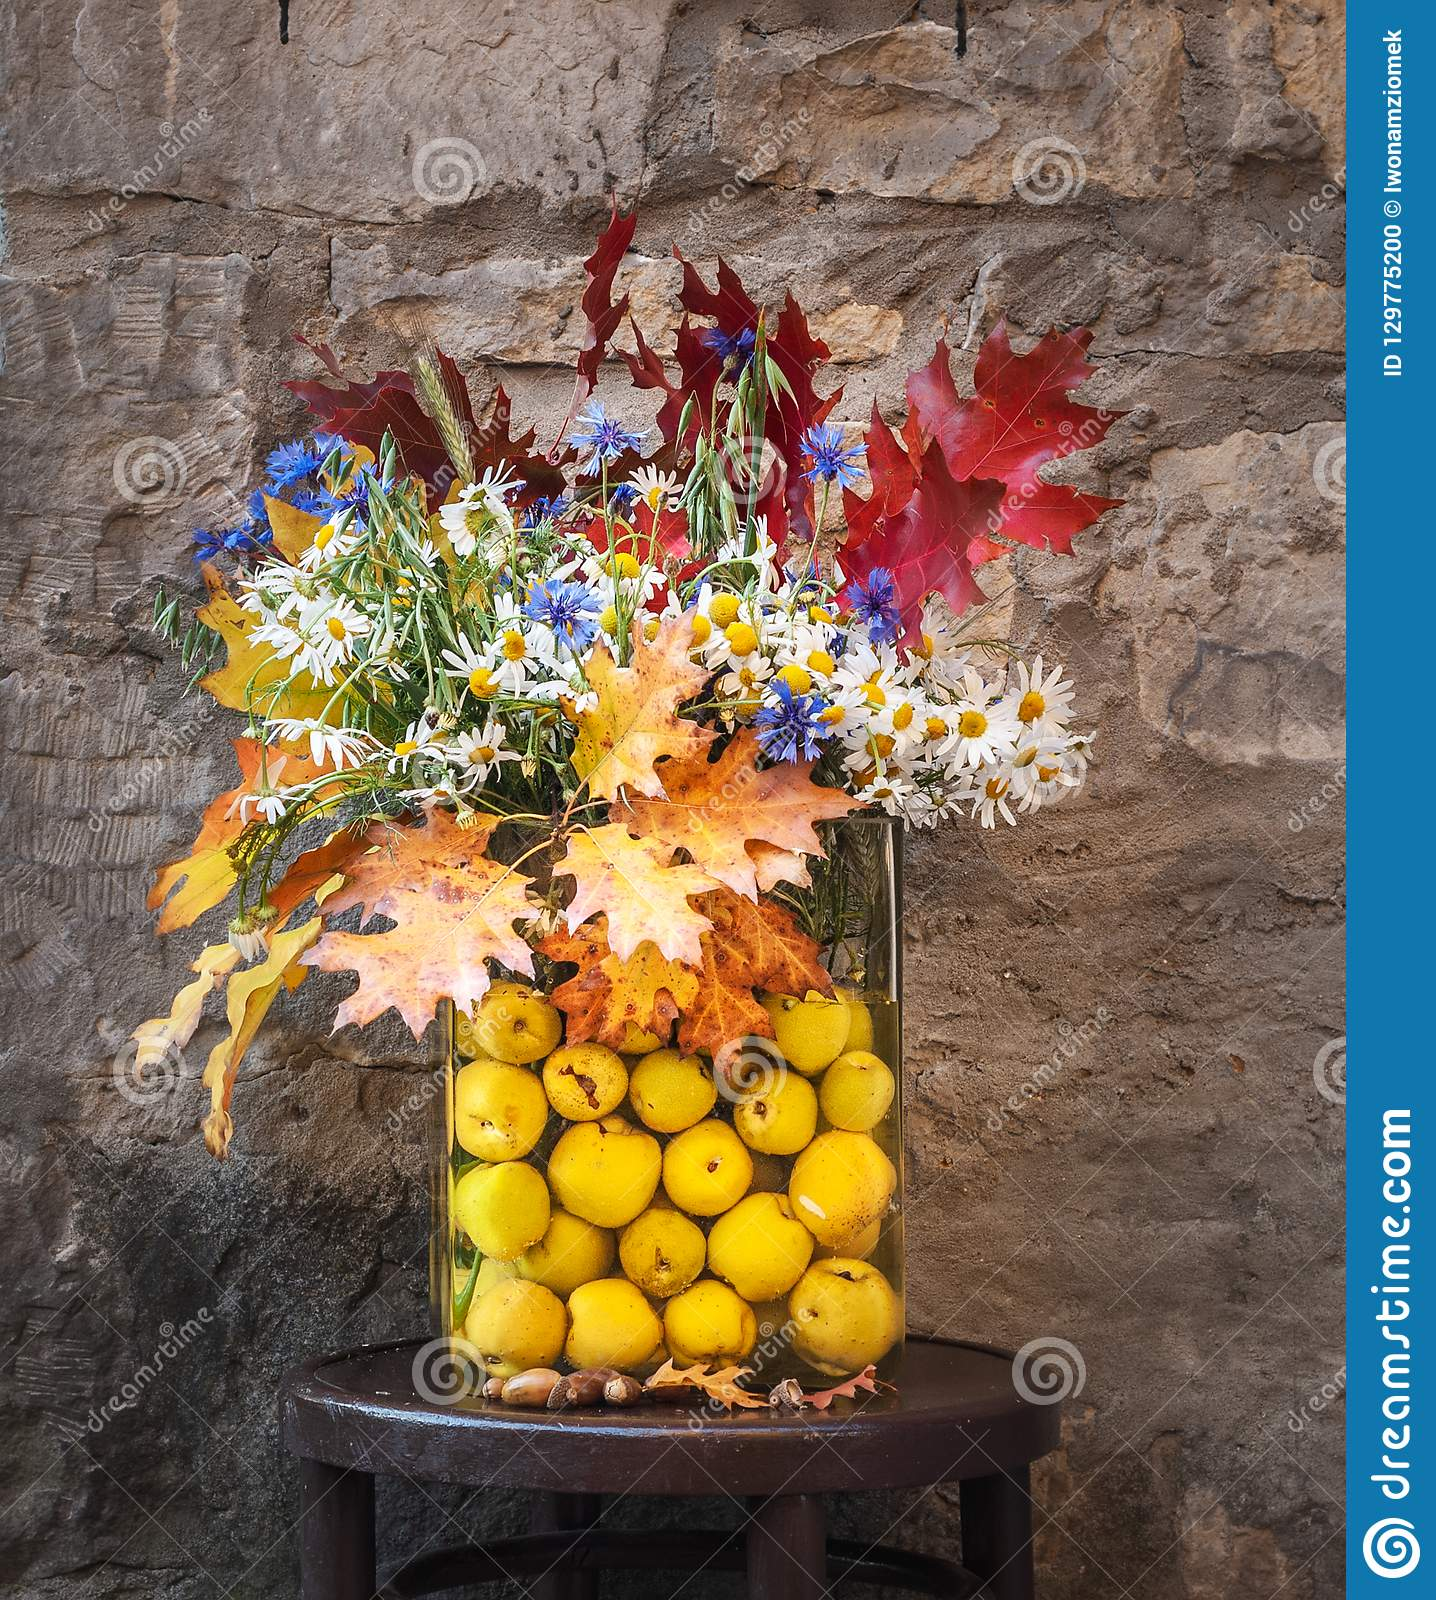 Bouquet of wild flowers and colorful autumn leaves. Autumnal bouquet in a glass vase with quince fruits. Old wall in the background. & Bouquet Of Wild Flowers And Colorful Autumn Leaves. Stock Photo ...